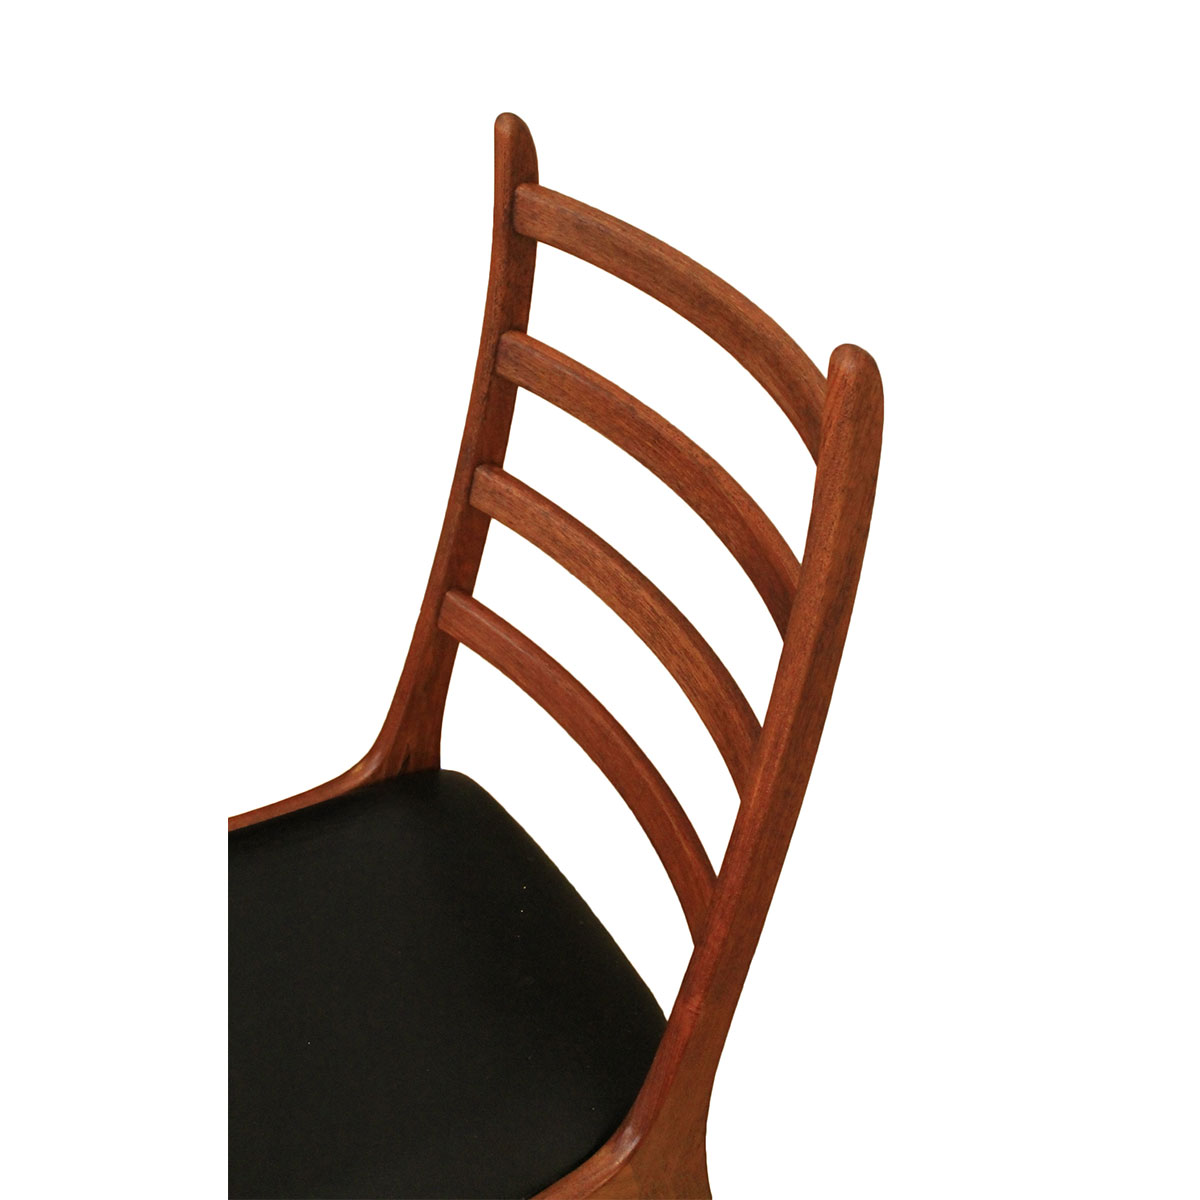 Set of 6 Kai Kristiansen Danish Modern Teak Dining Chairs